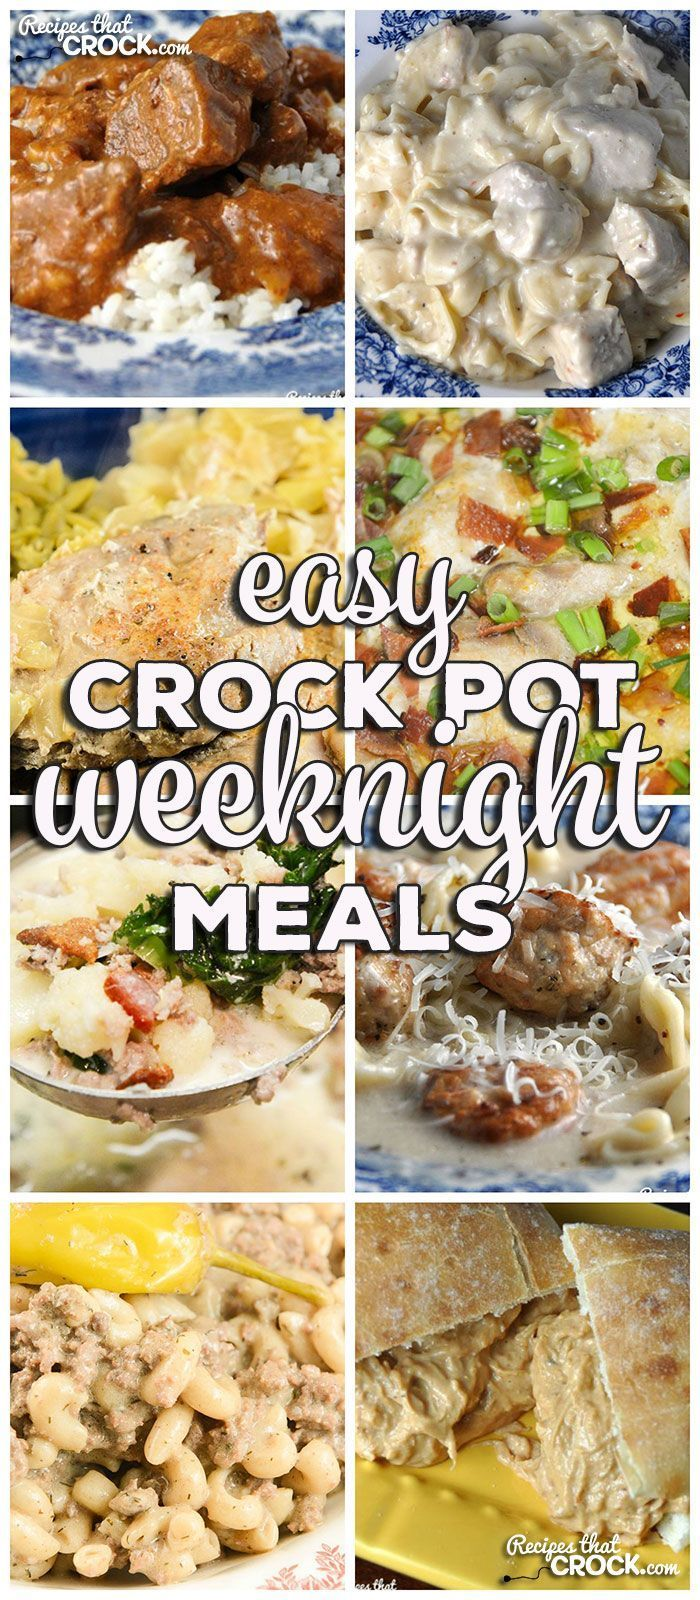 This week for our Friday Favorites we have Easy Crock Pot Weeknight Meals like Crock Pot Meatball Tortellini Soup, Slow Cooker Texas Chili, Crock Pot Creamy Mississippi Beefy Mac, Crock Pot Pork Chops – Melt In Your Mouth, Crock Pot Beefy Tostada Pie, Slow Cooker Chicken Stroganoff, Crock Pot Pork Chops and Cabbage, Low Carb Crock Pot Creamy Bacon Onion Chicken, Creamy Crock Pot BBQ Chicken Sandwiches, Crock Pot Cheesy Chicken Spaghetti, Crock Pot Goulash, Crock Pot Chicken Alfredo Ravioli